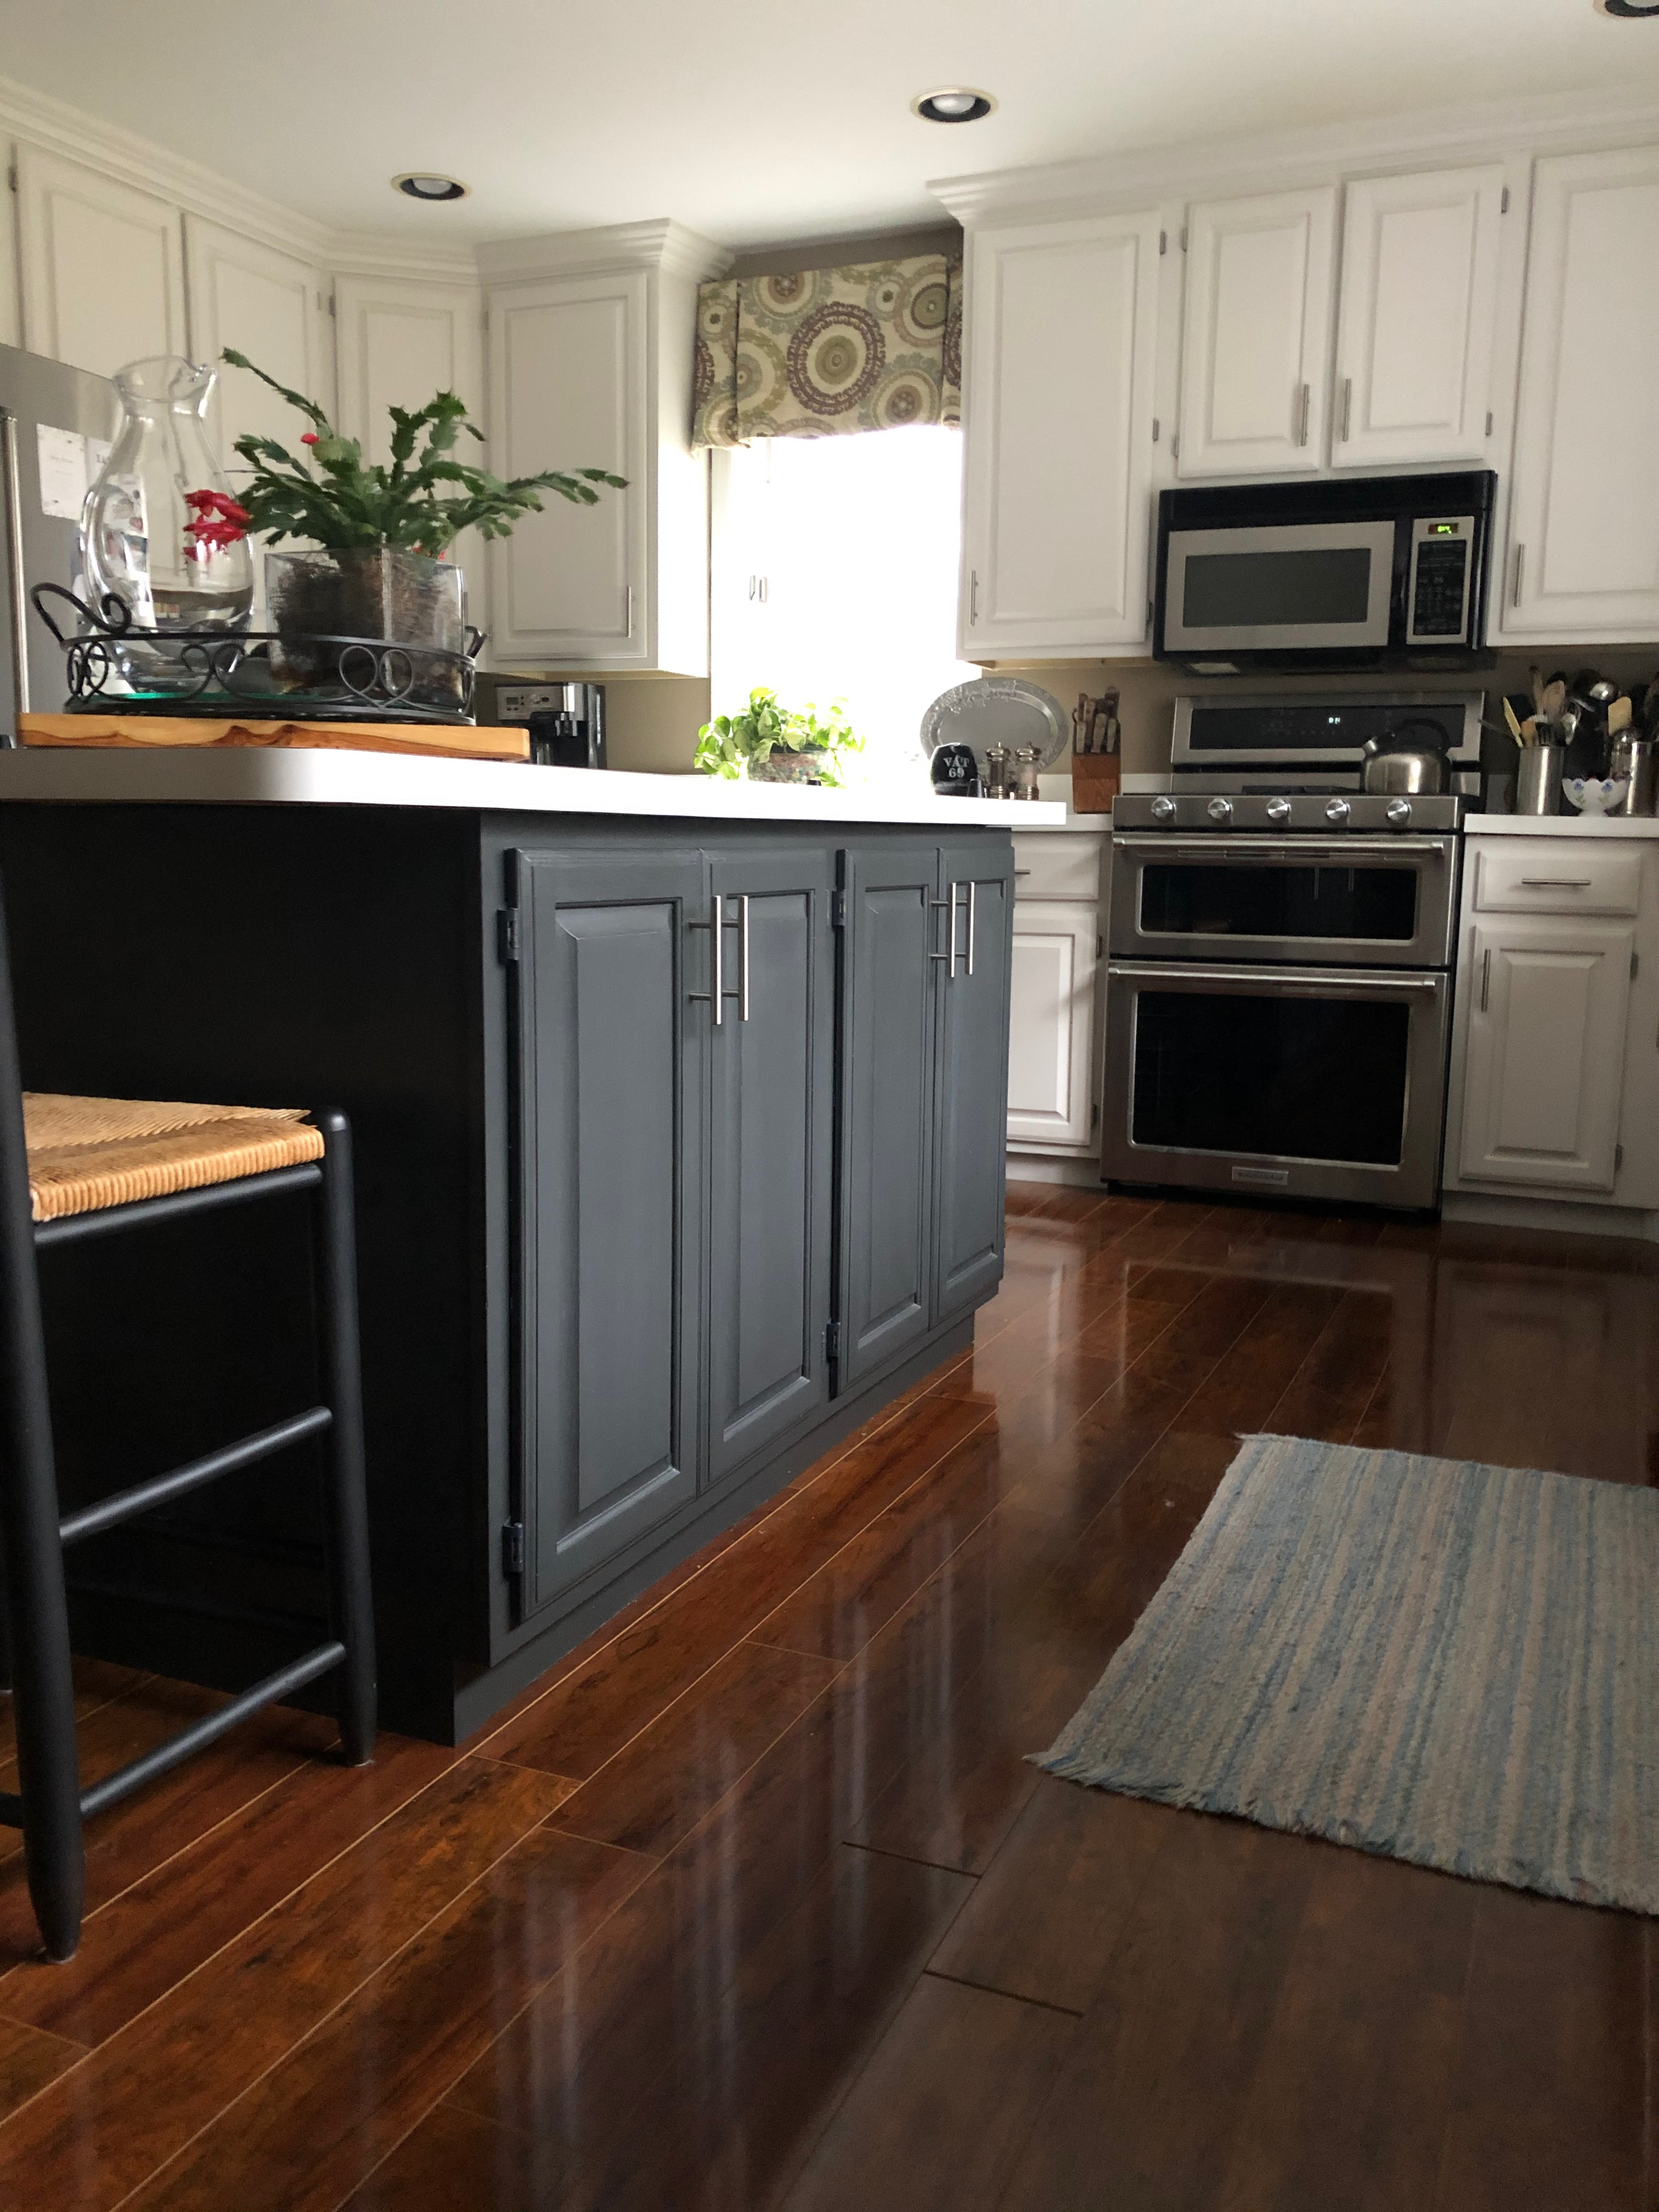 Images Of Painted Kitchen Cabinets DIY Kitchen Update: Painting Kitchen Cabinets   a little kooky